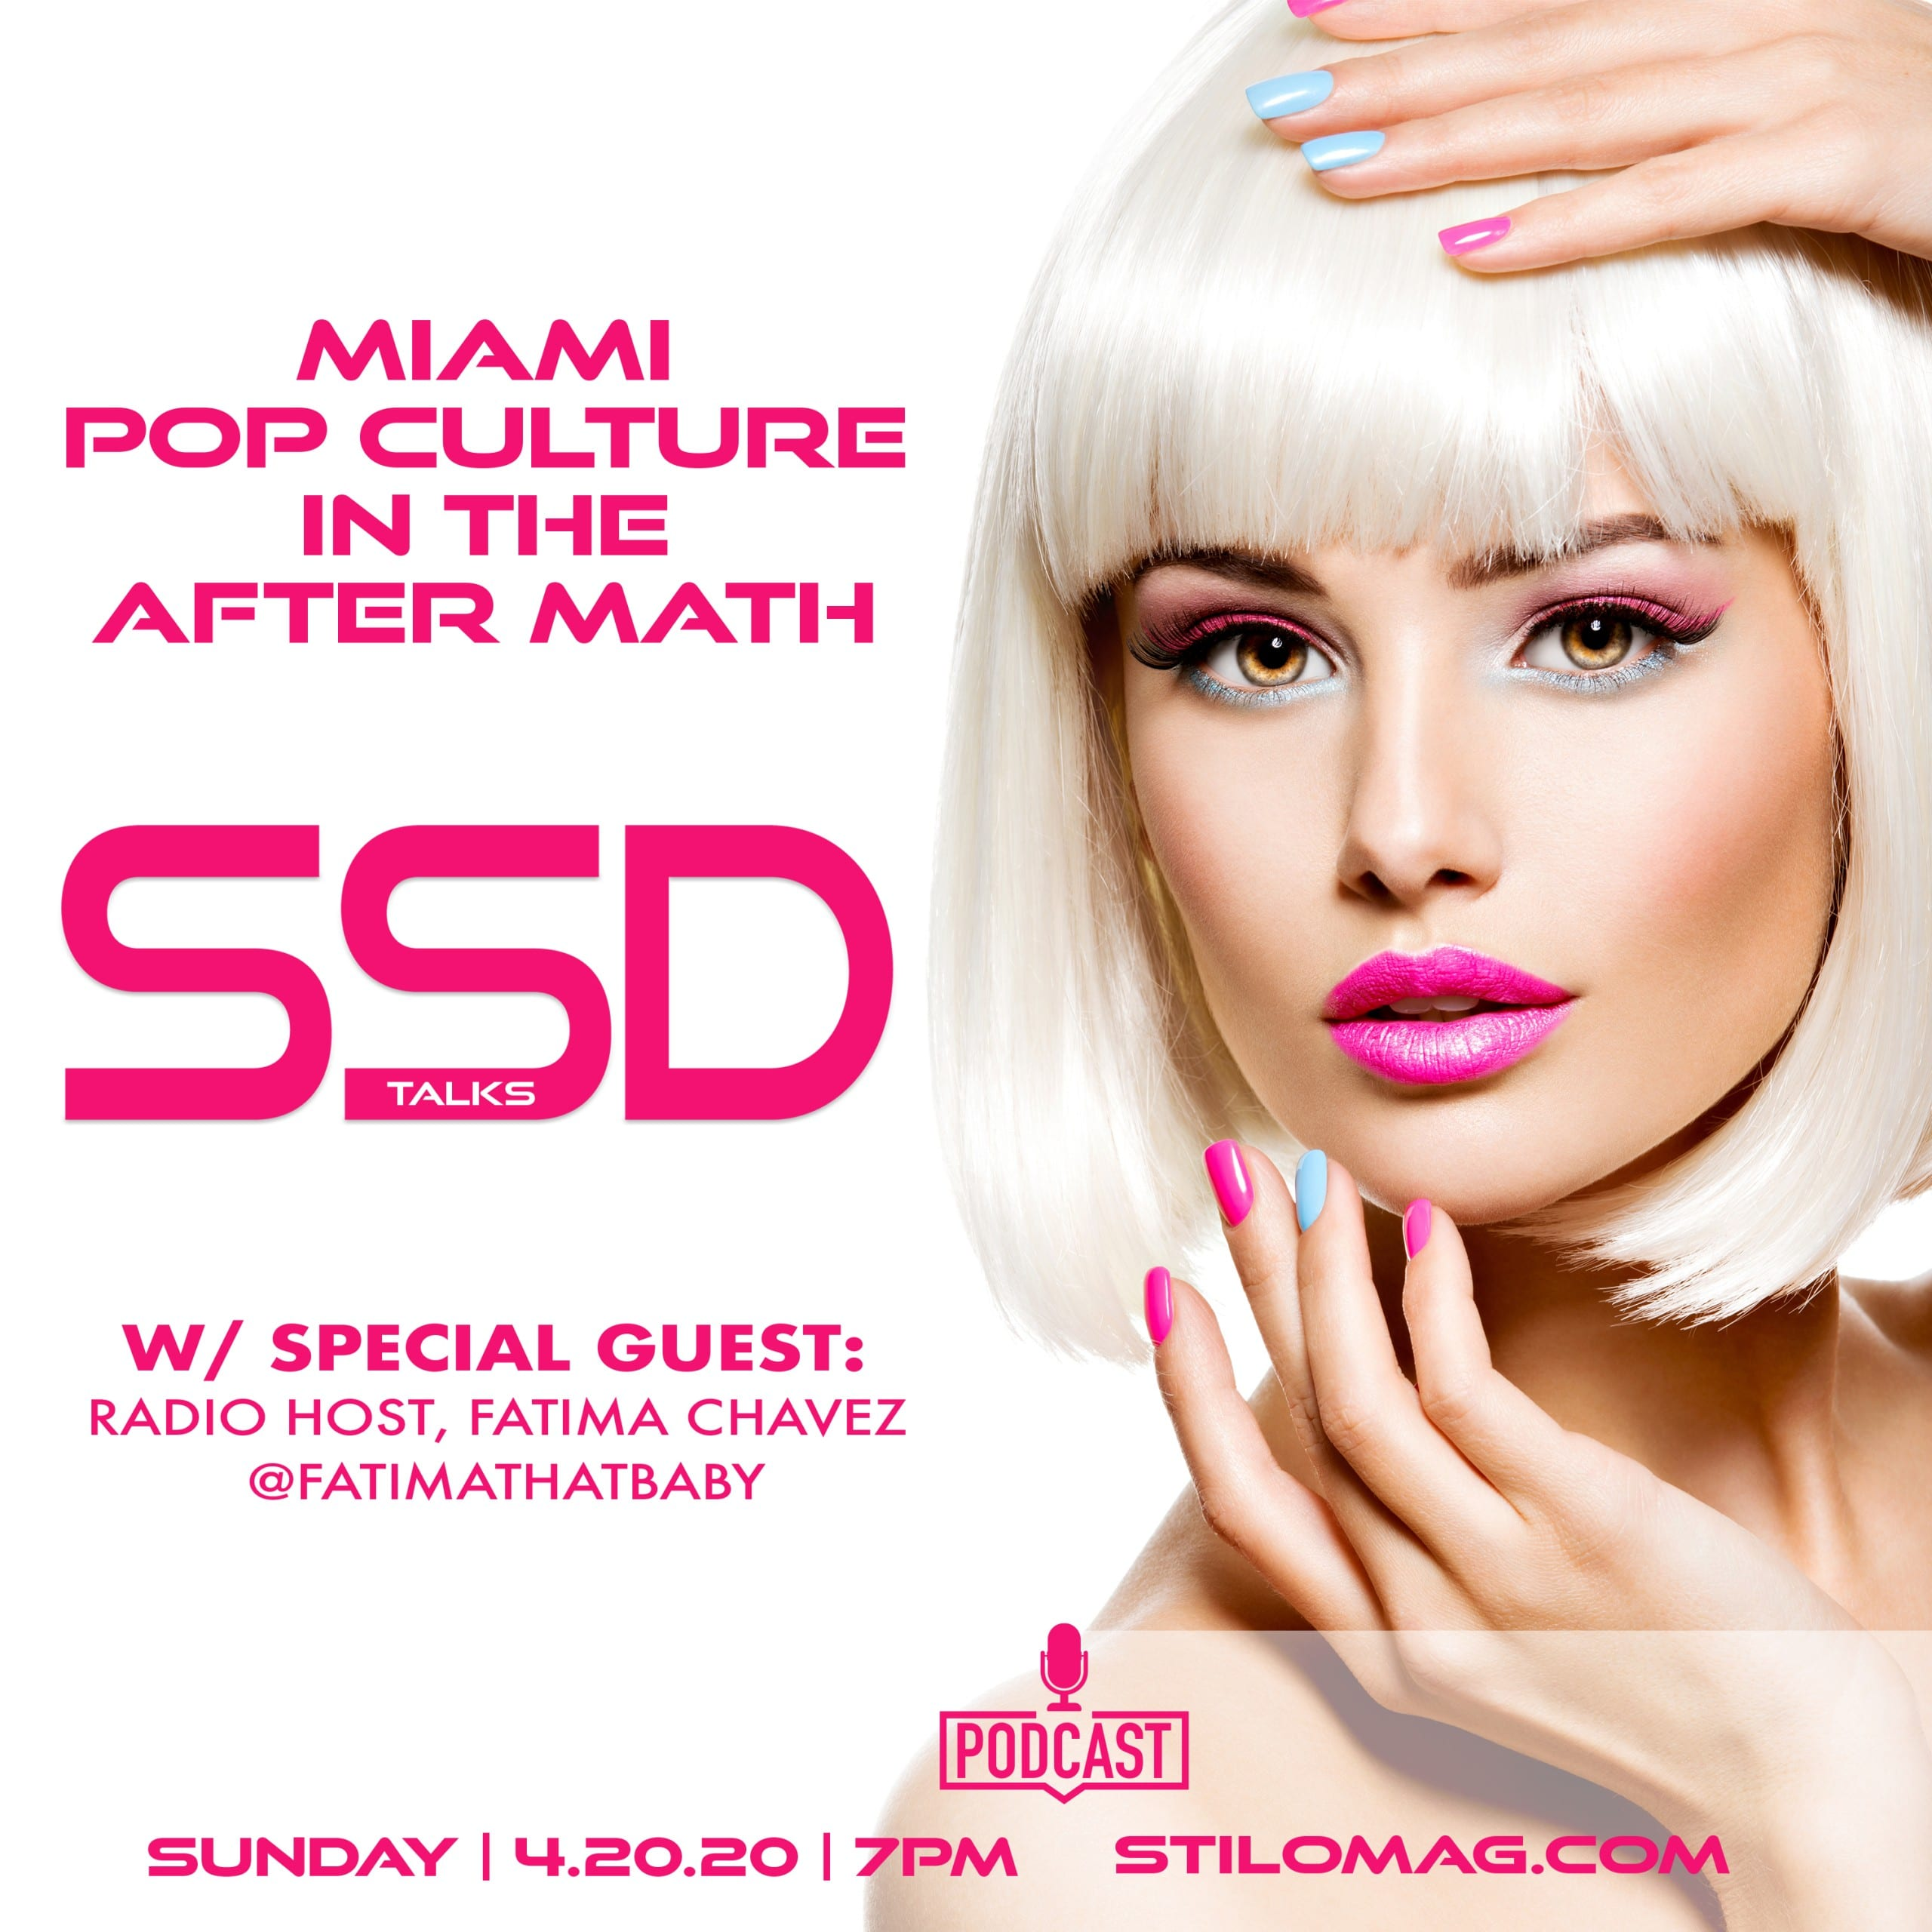 Miami Pop Culture in the AfterMath